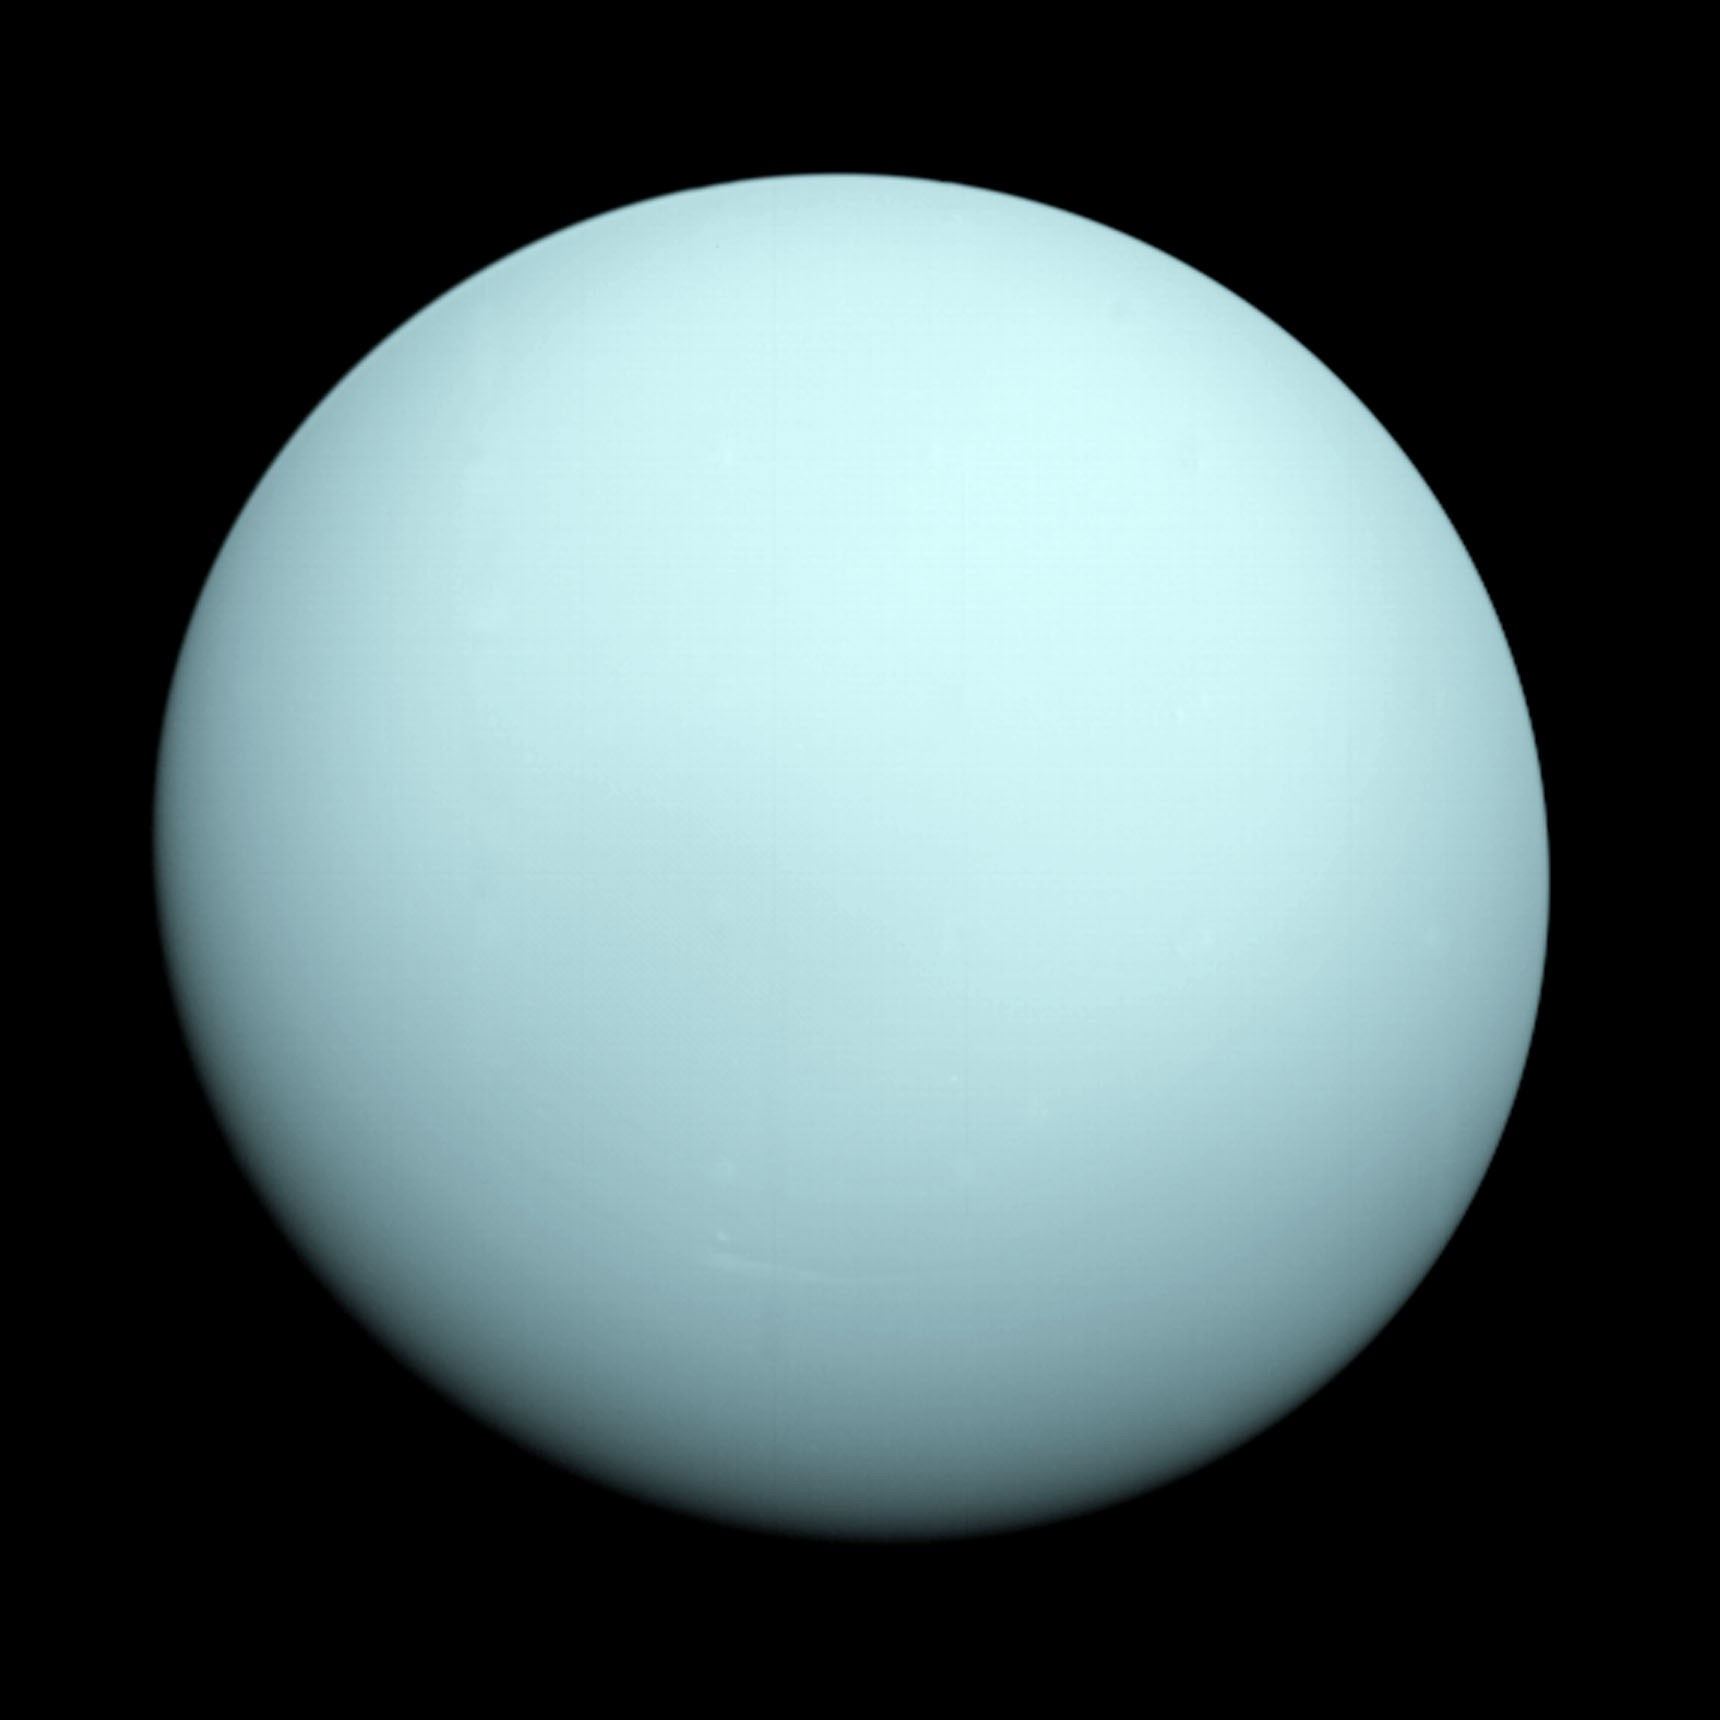 Uranus As A Featureless Disc, Photographed By Voyager 2 In 1986